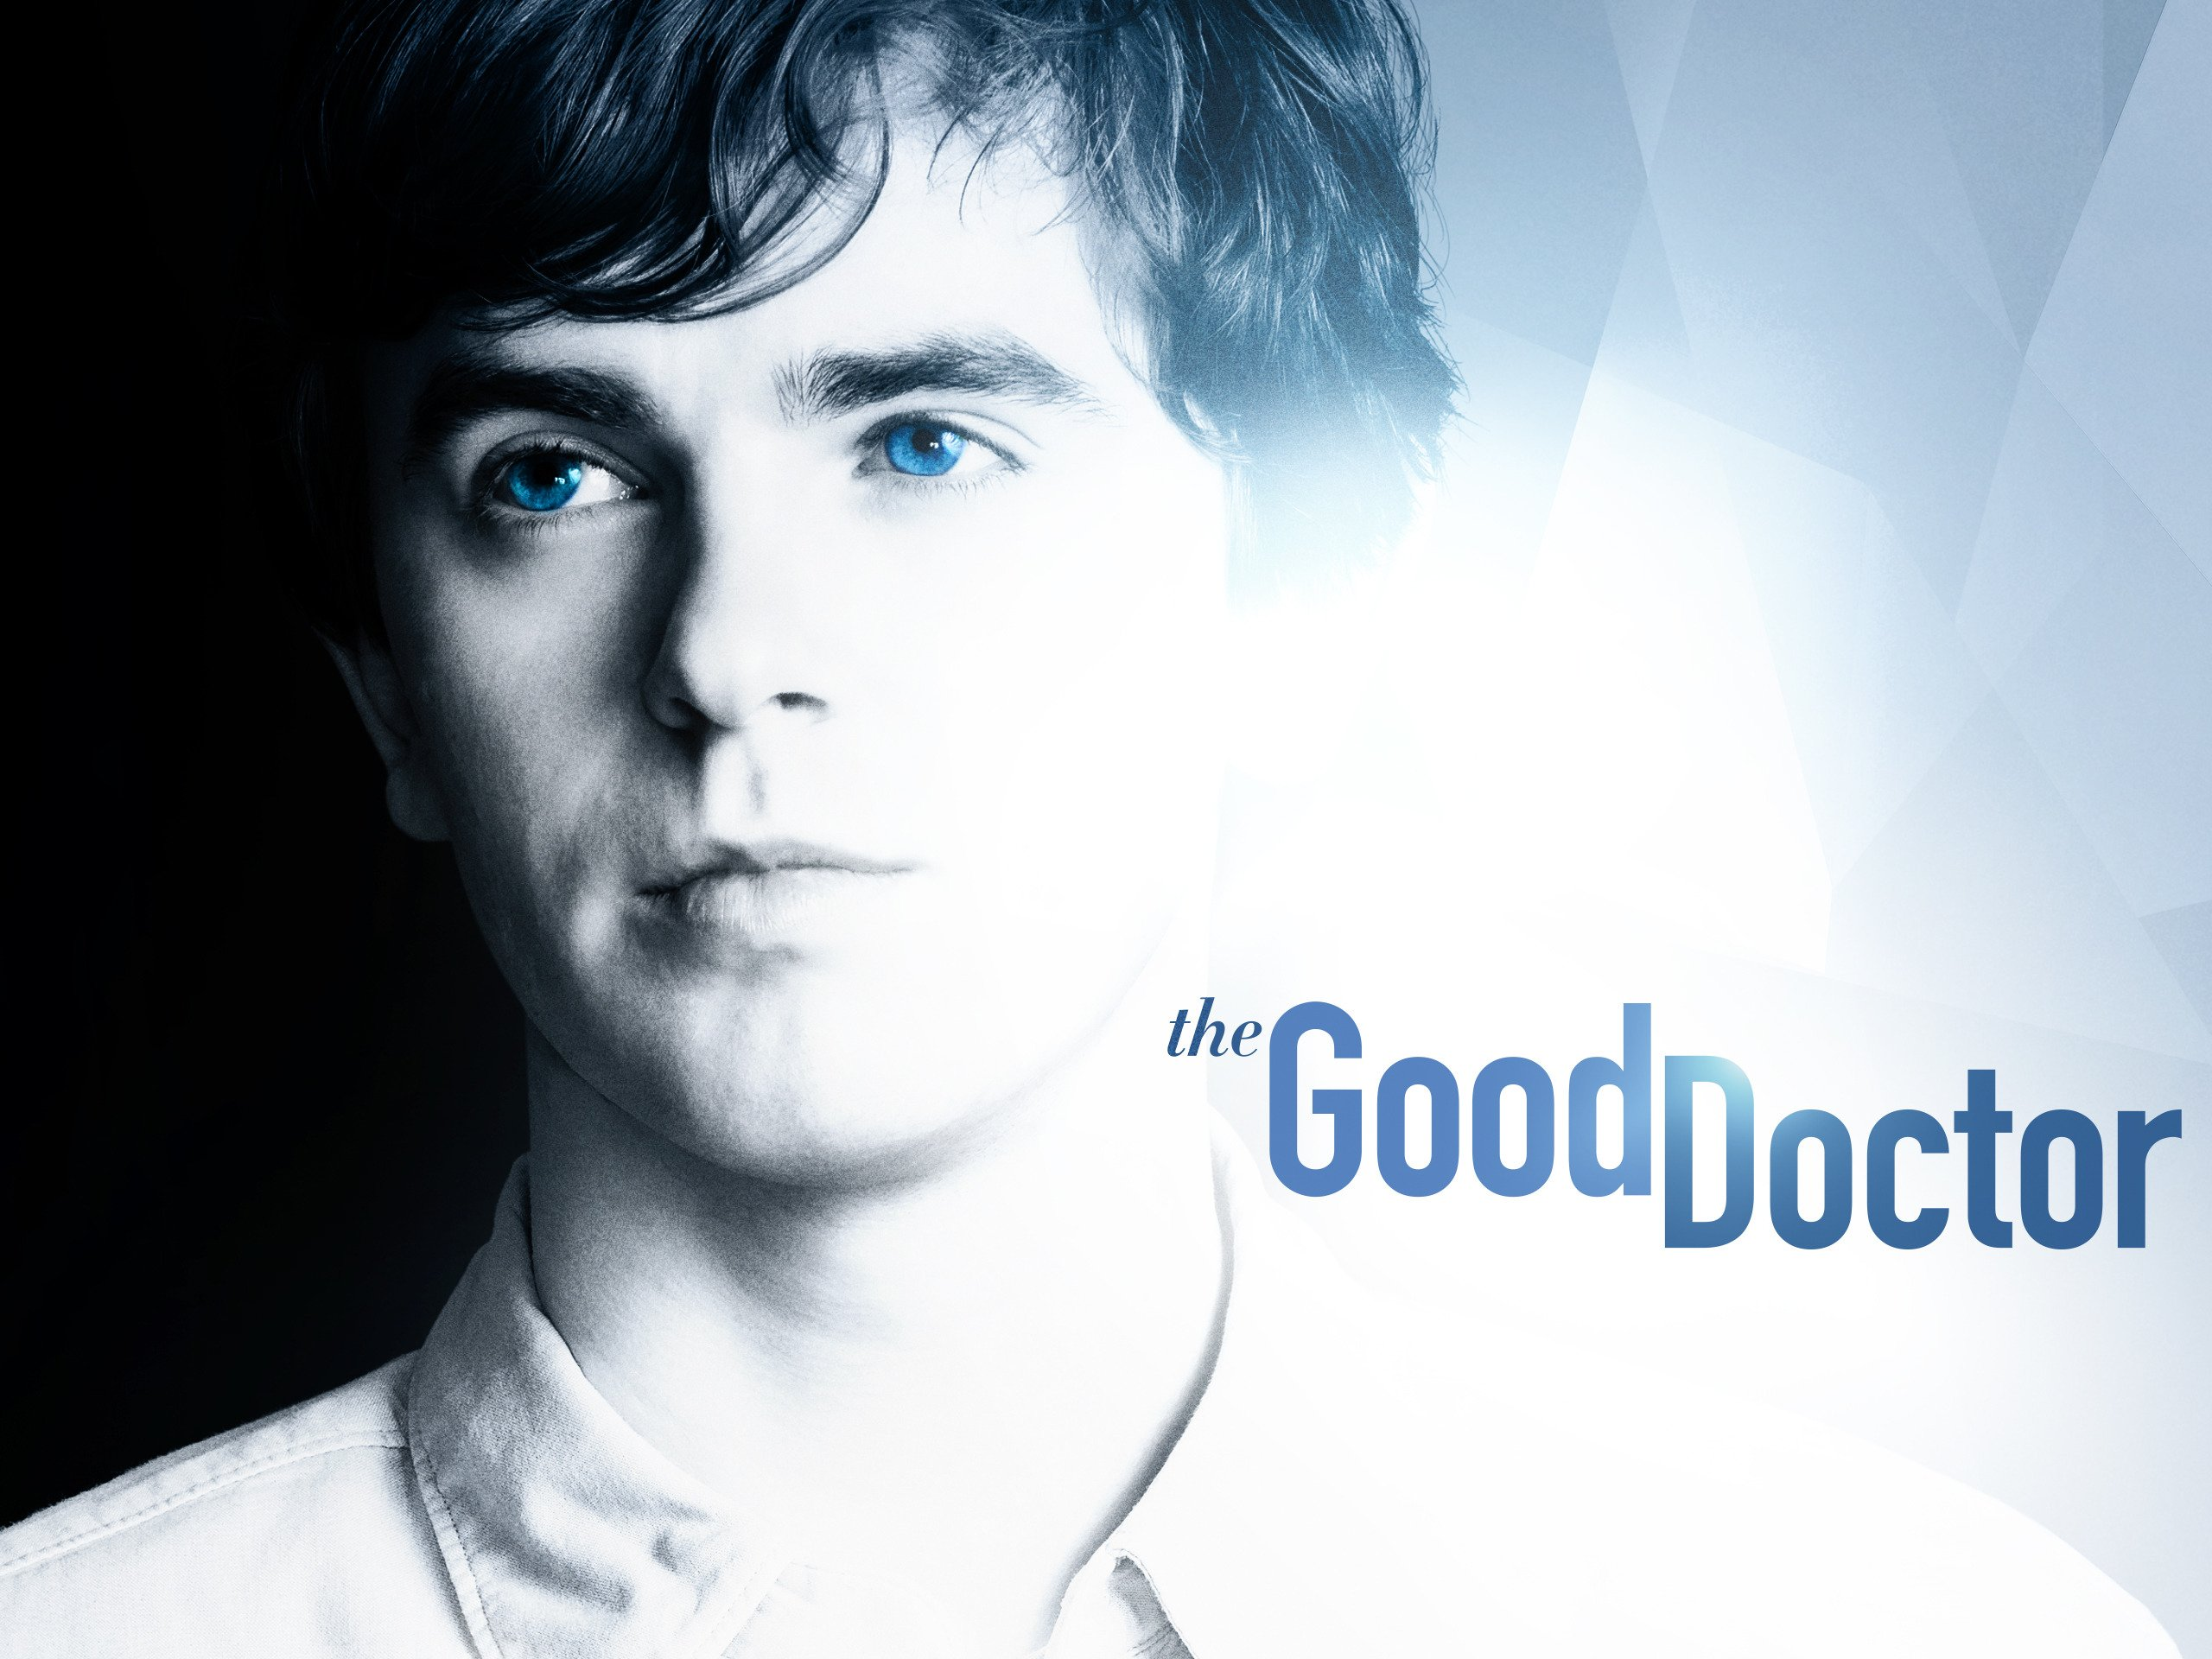 The Good Doctor Season 4 Episode 6: Latest Updates!